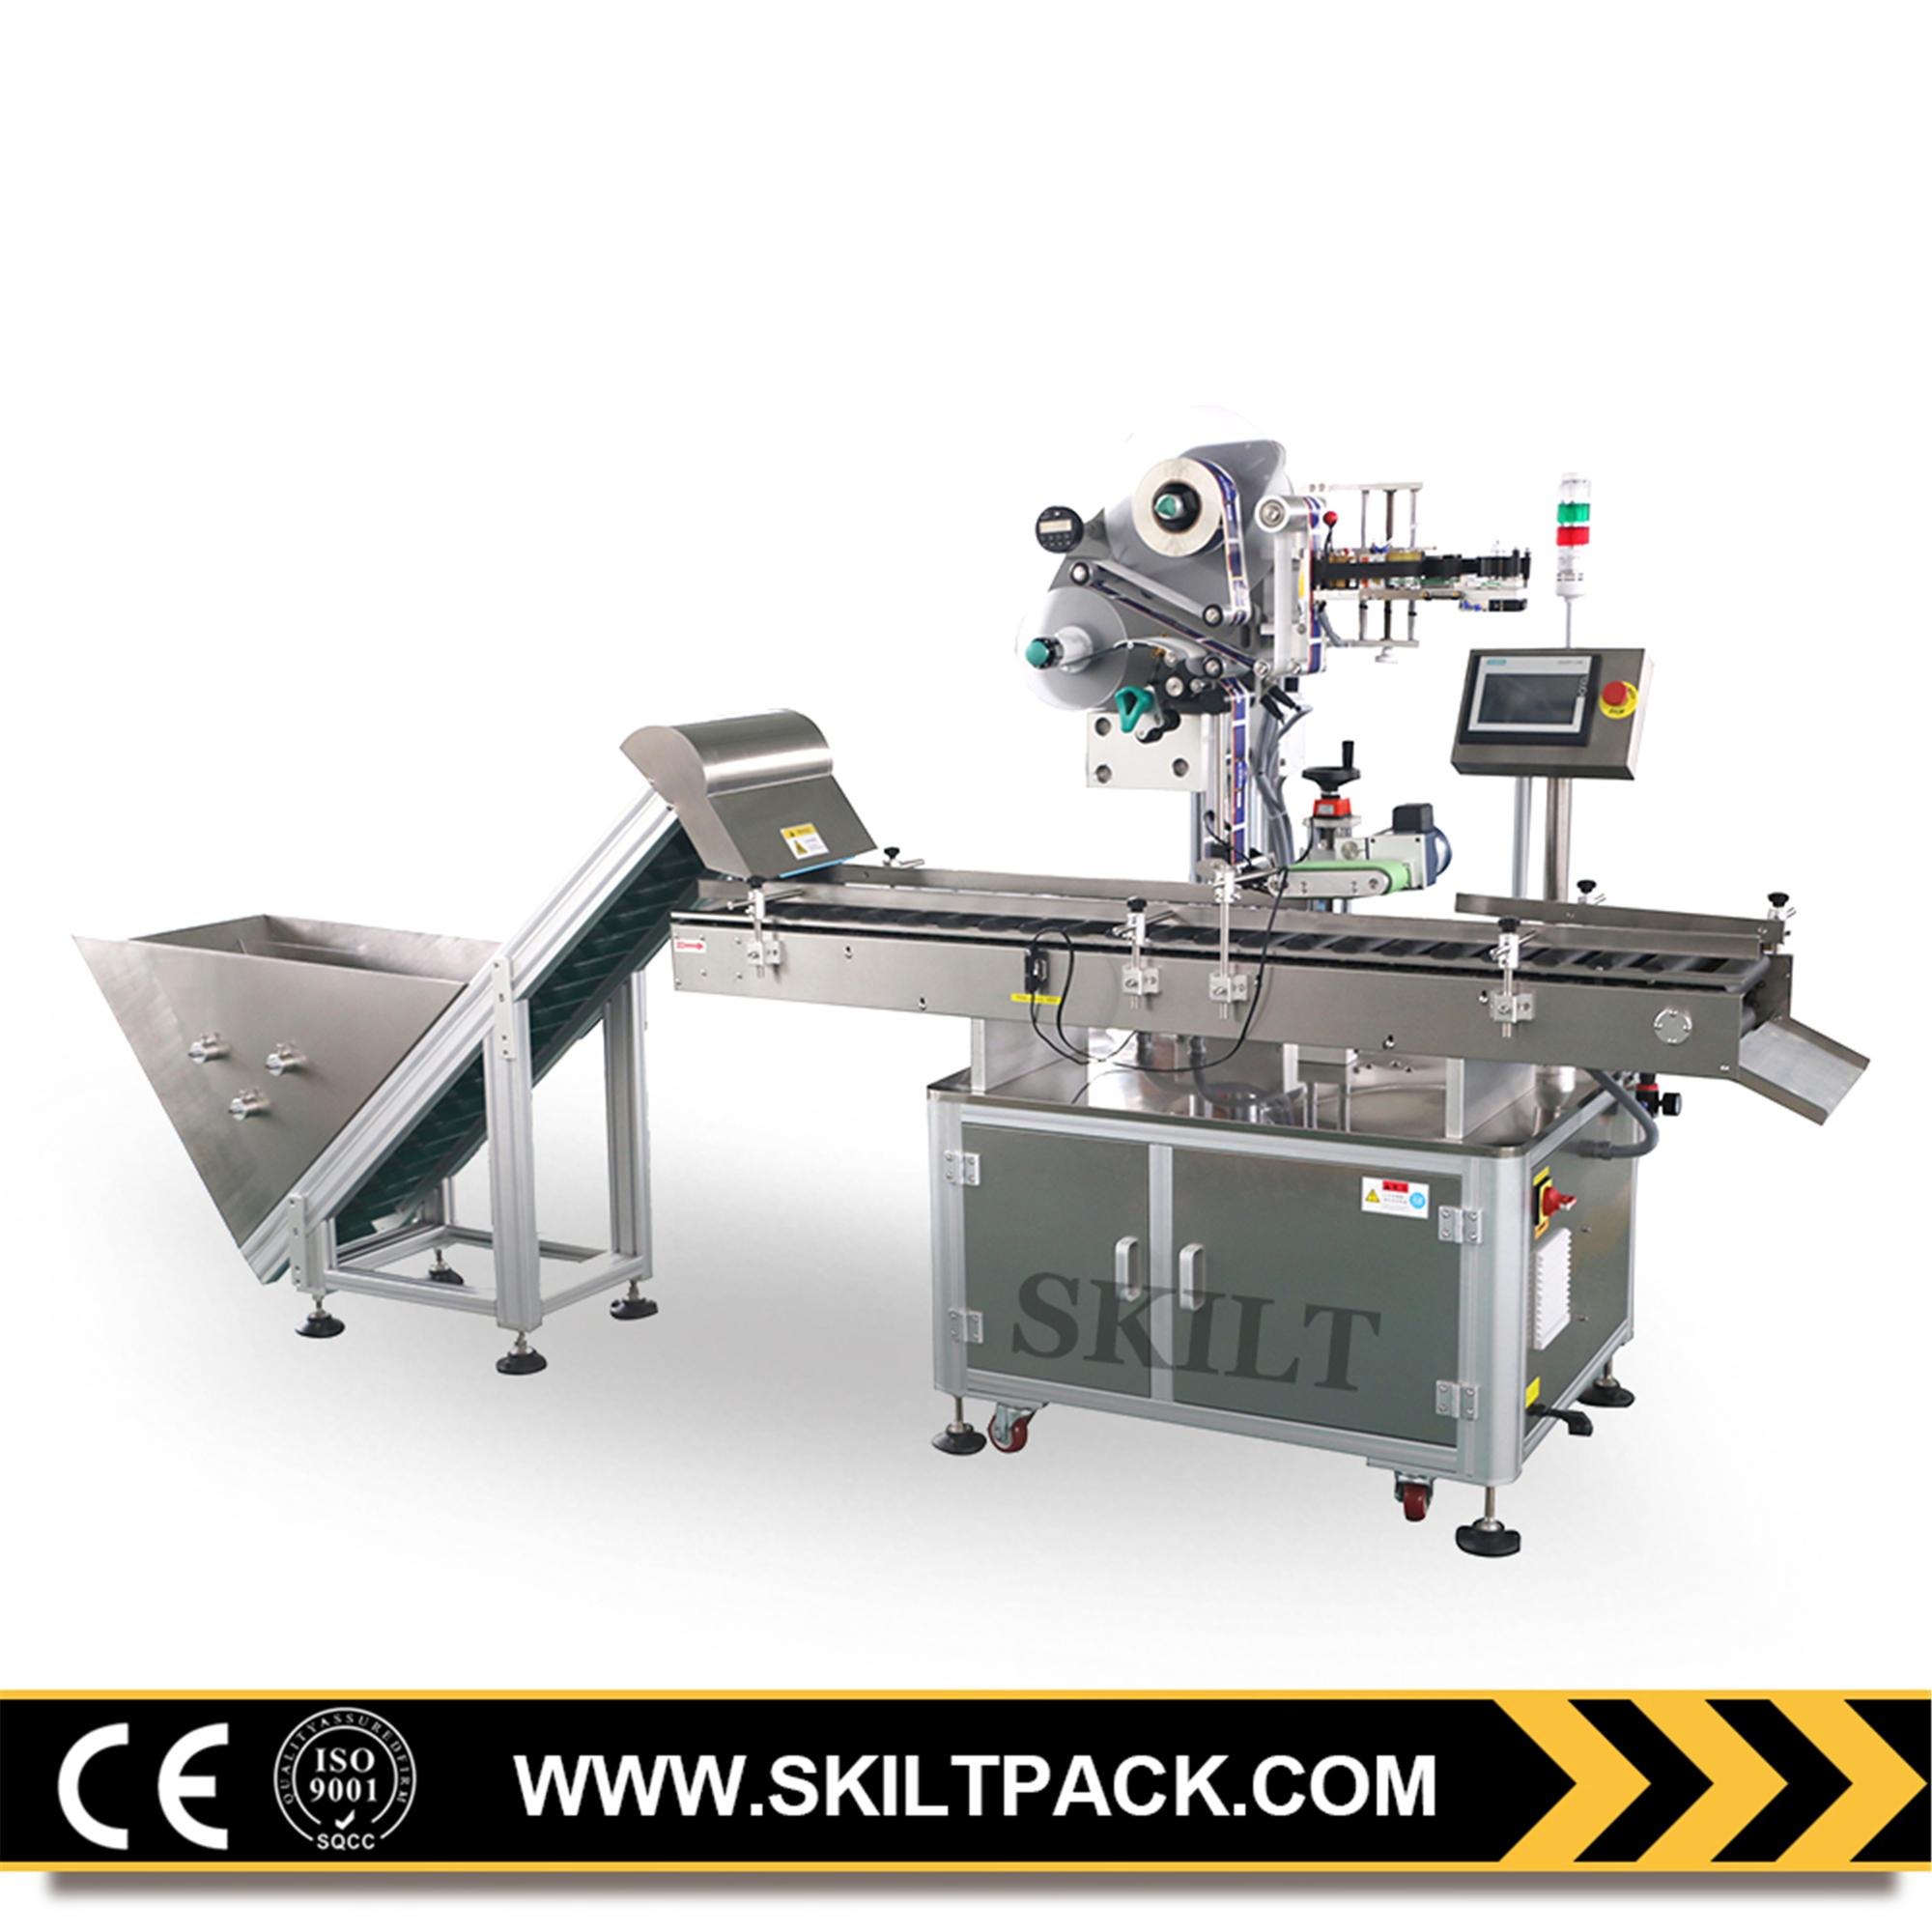 folded feeder manufacturers label without box showroom labeling com applicator and alibaba machine at folding suppliers